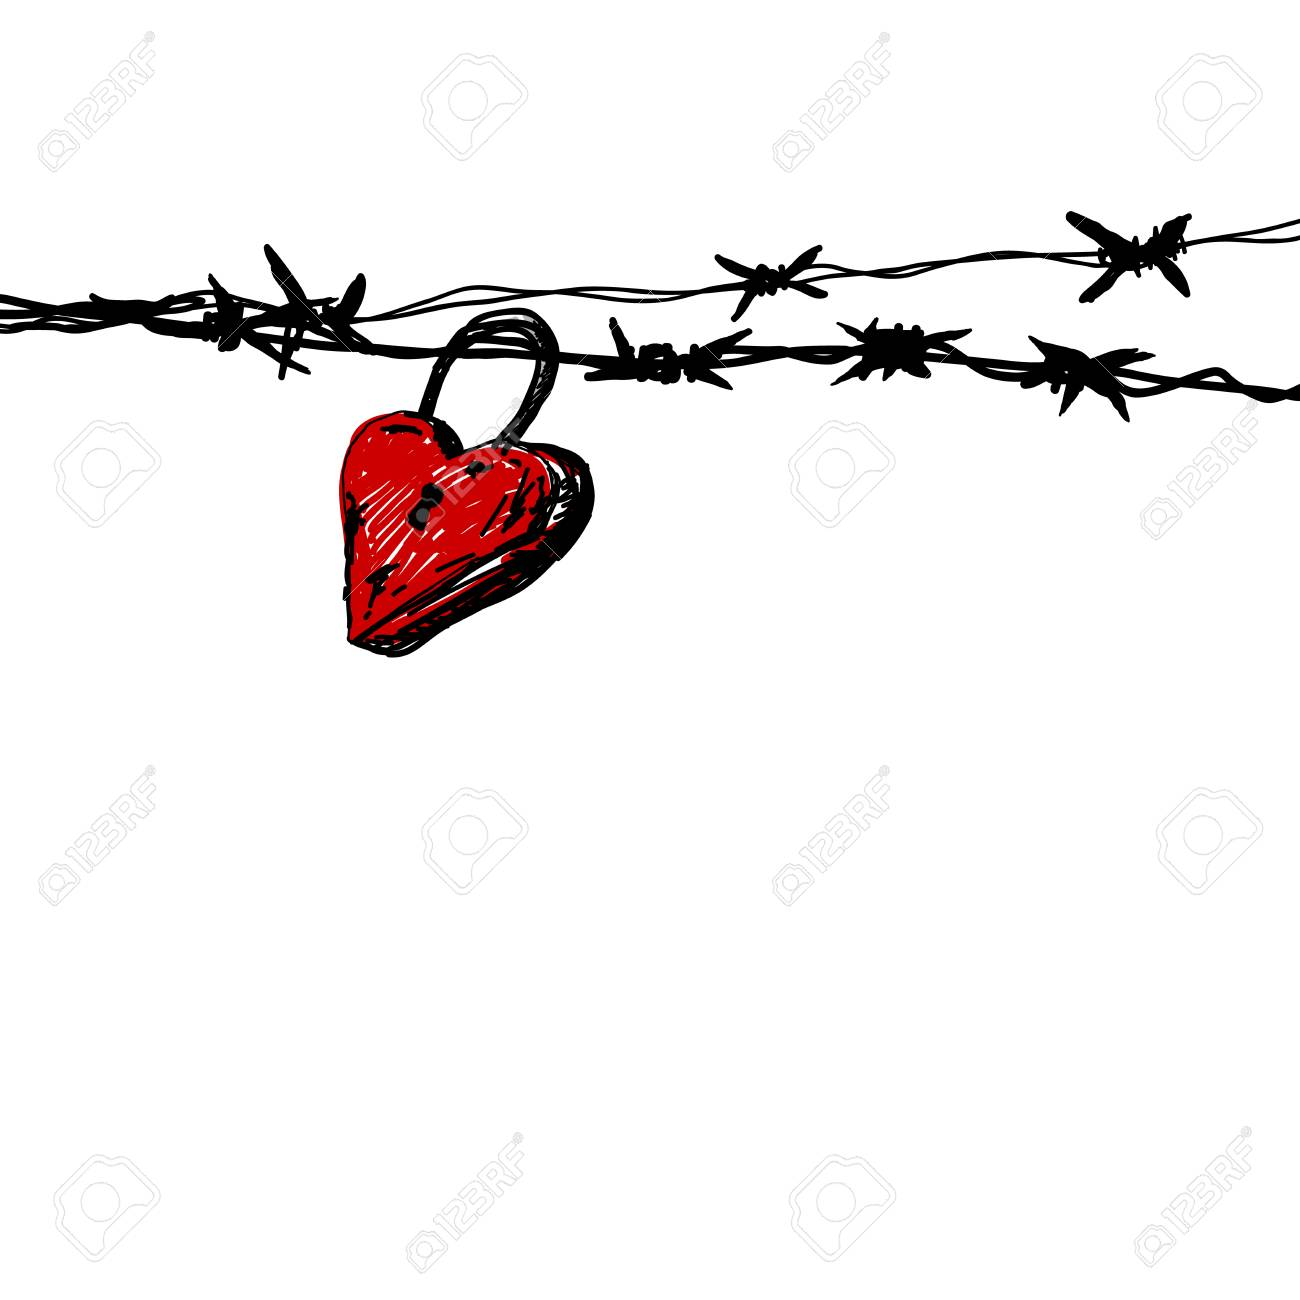 Funky Barbed Wire Heart Drawings Inspiration - Electrical Diagram ...